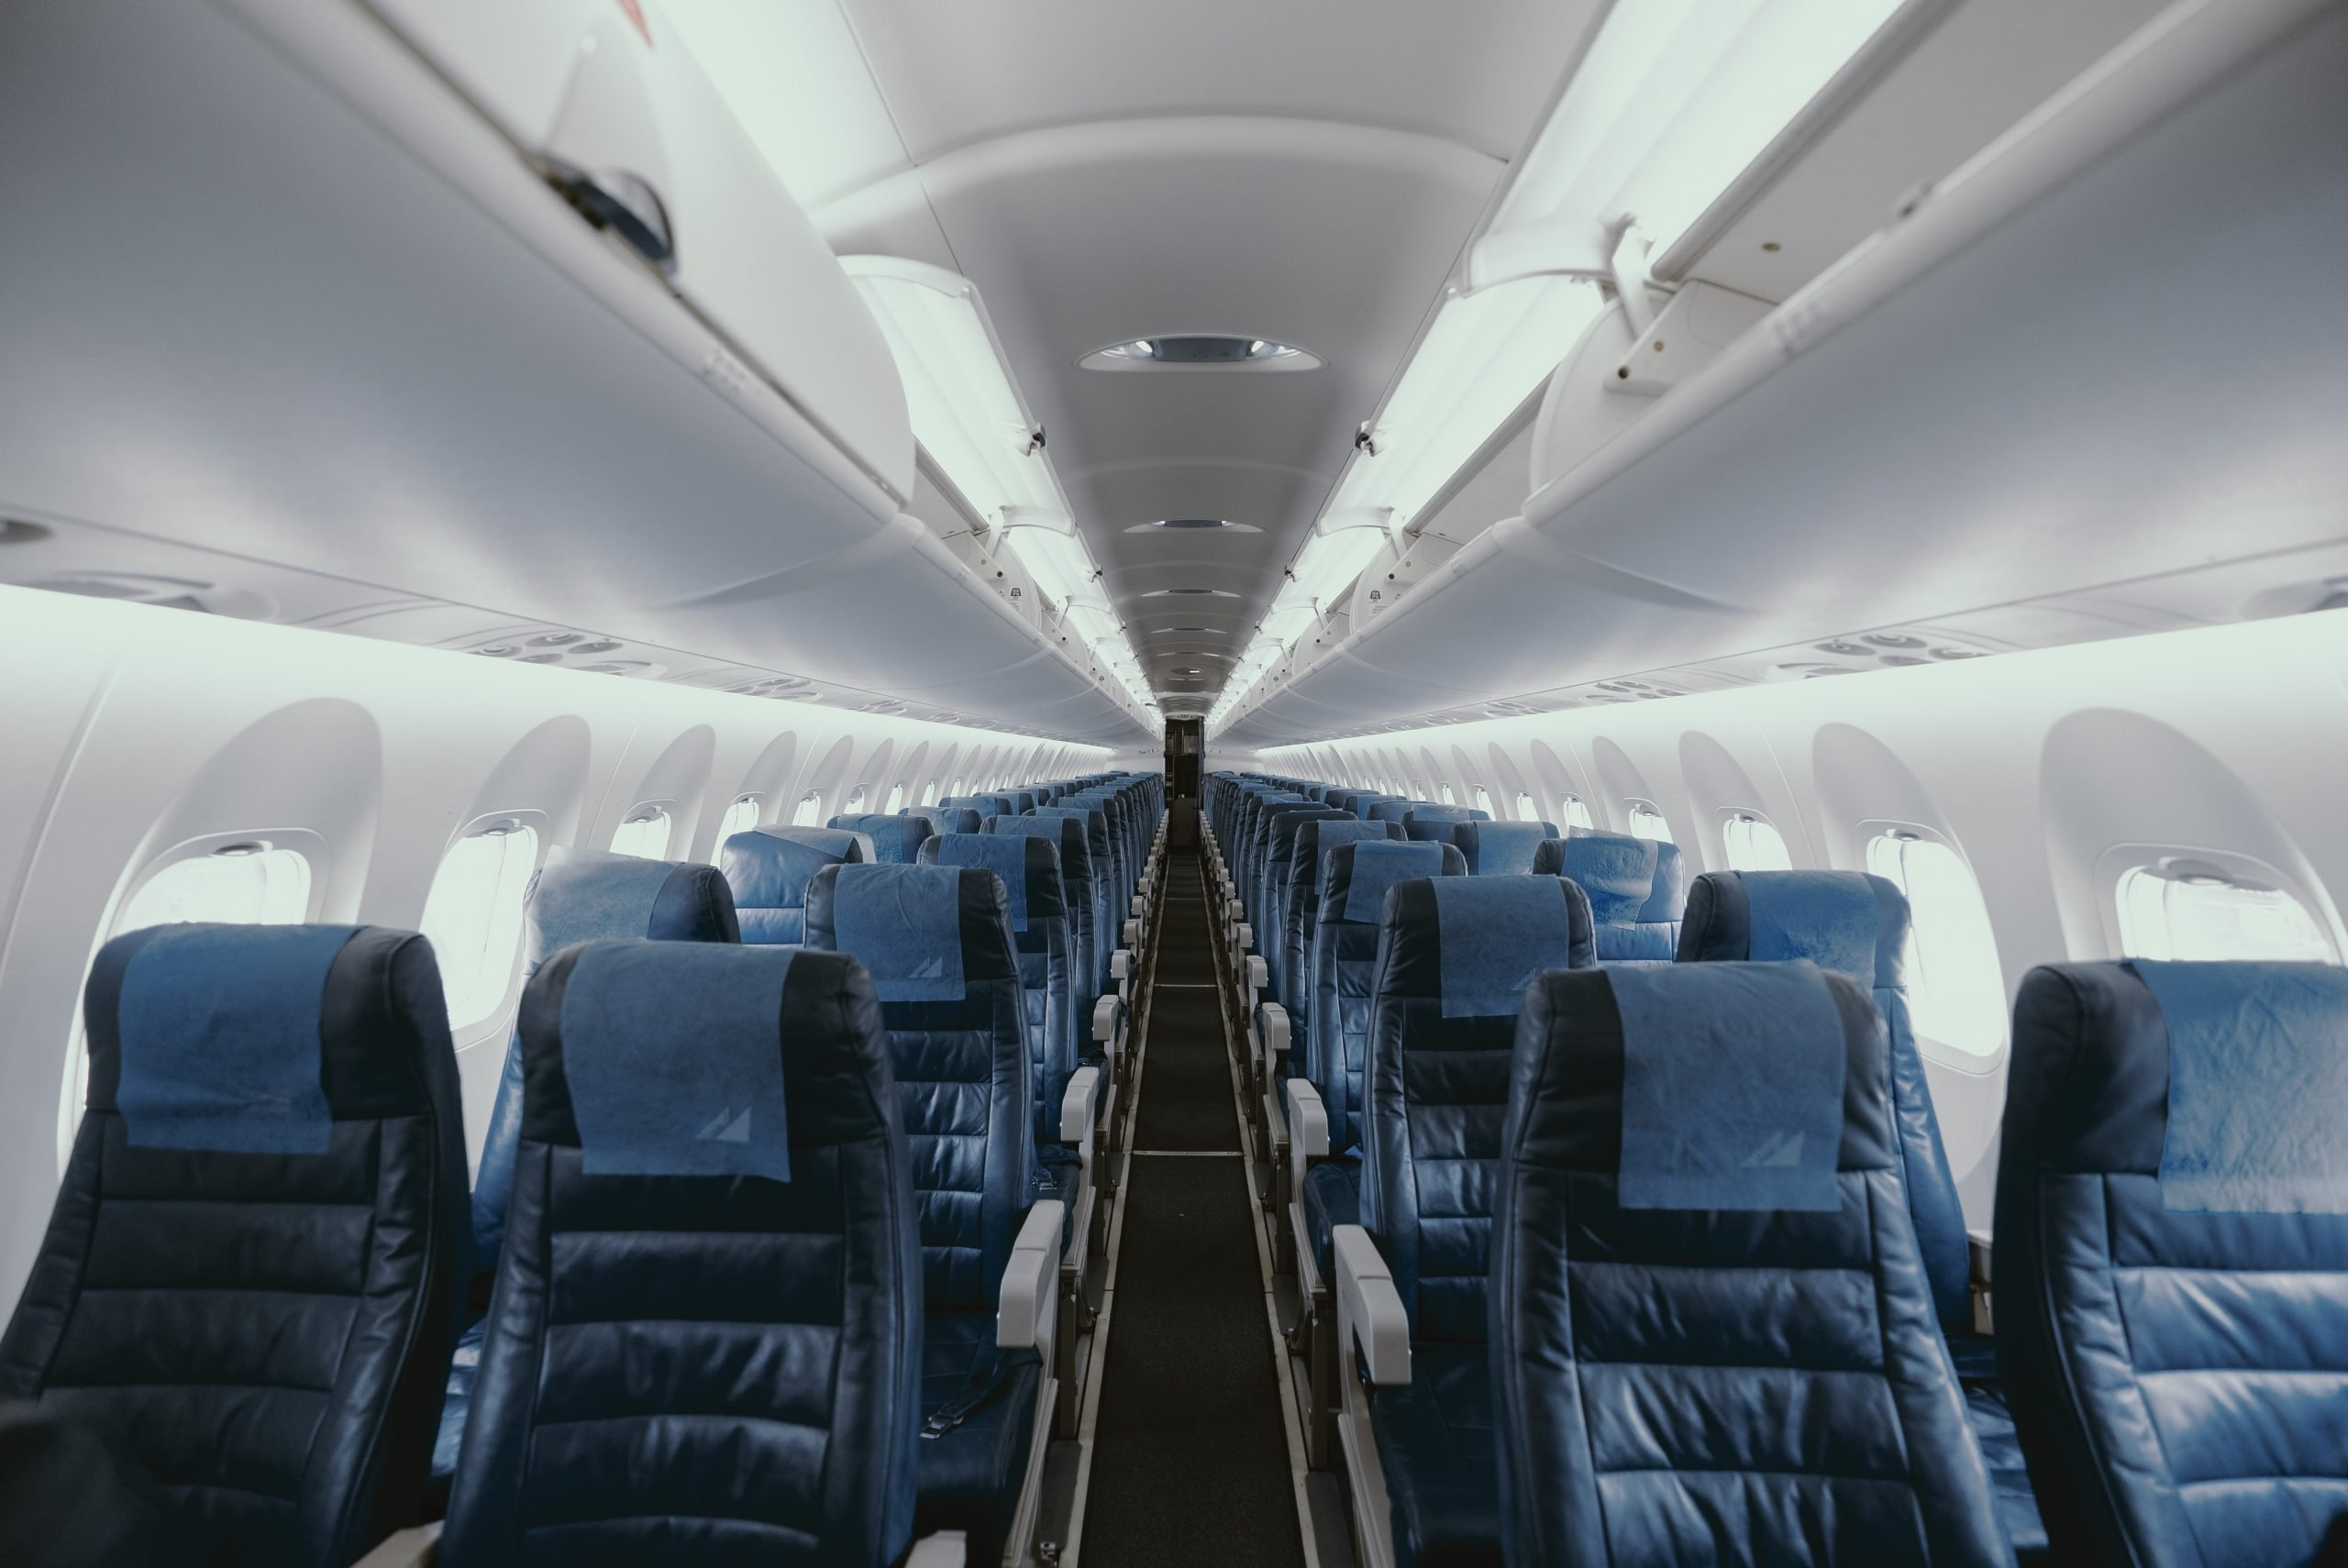 Inside view of empty airliner by JC Gellidon